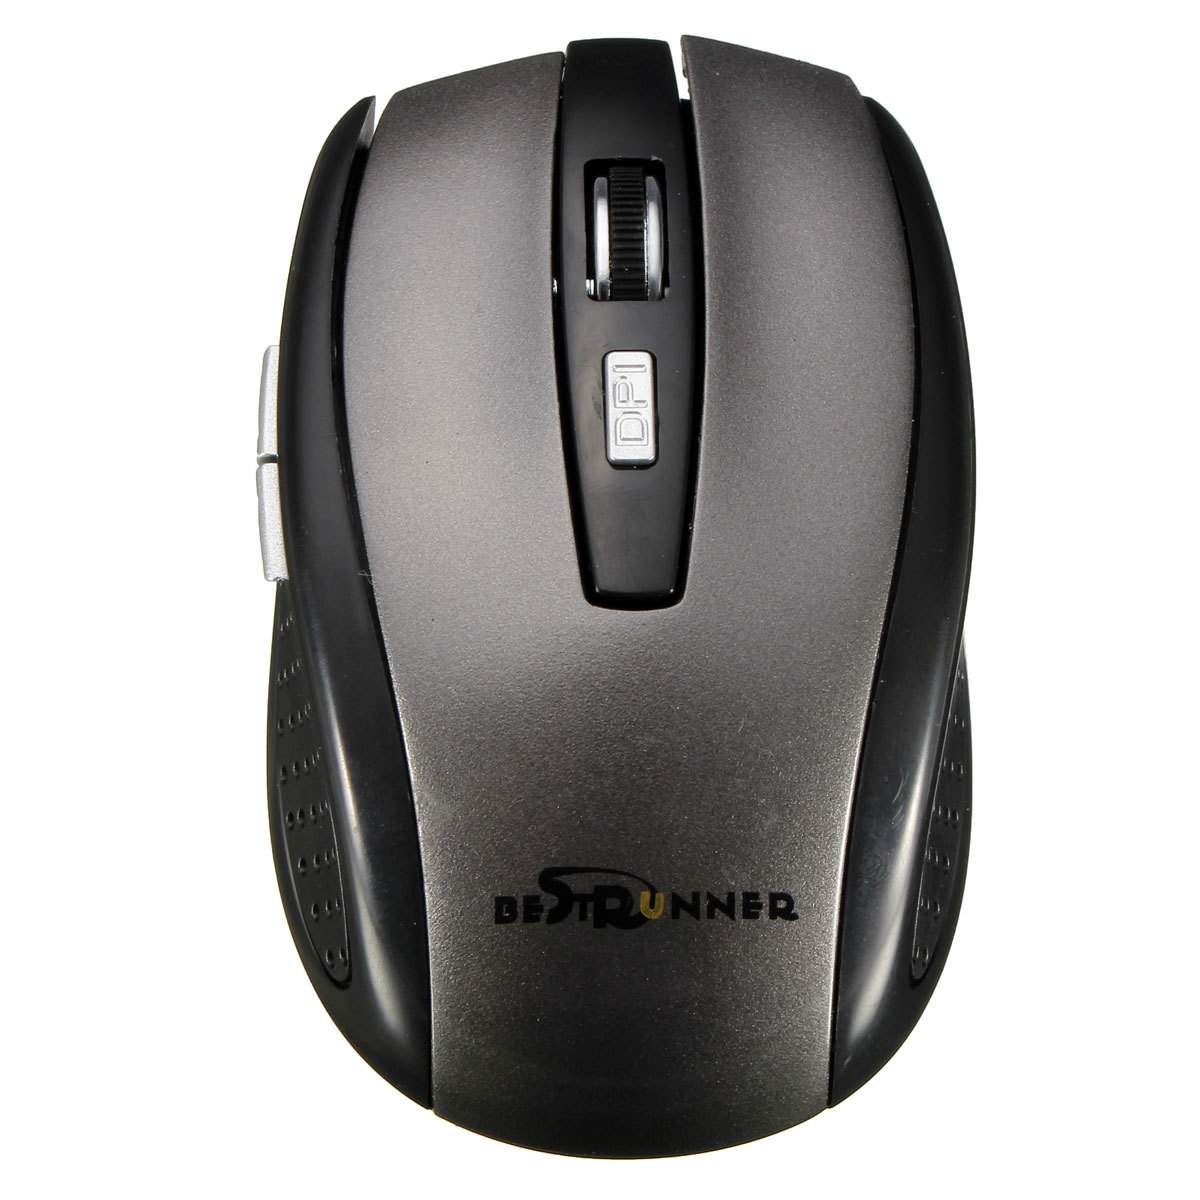 ... BESTRUNNER 2 4G USB WIRELESS OPTICAL MOUSE ADAPTABLE FOR PC BLACK image